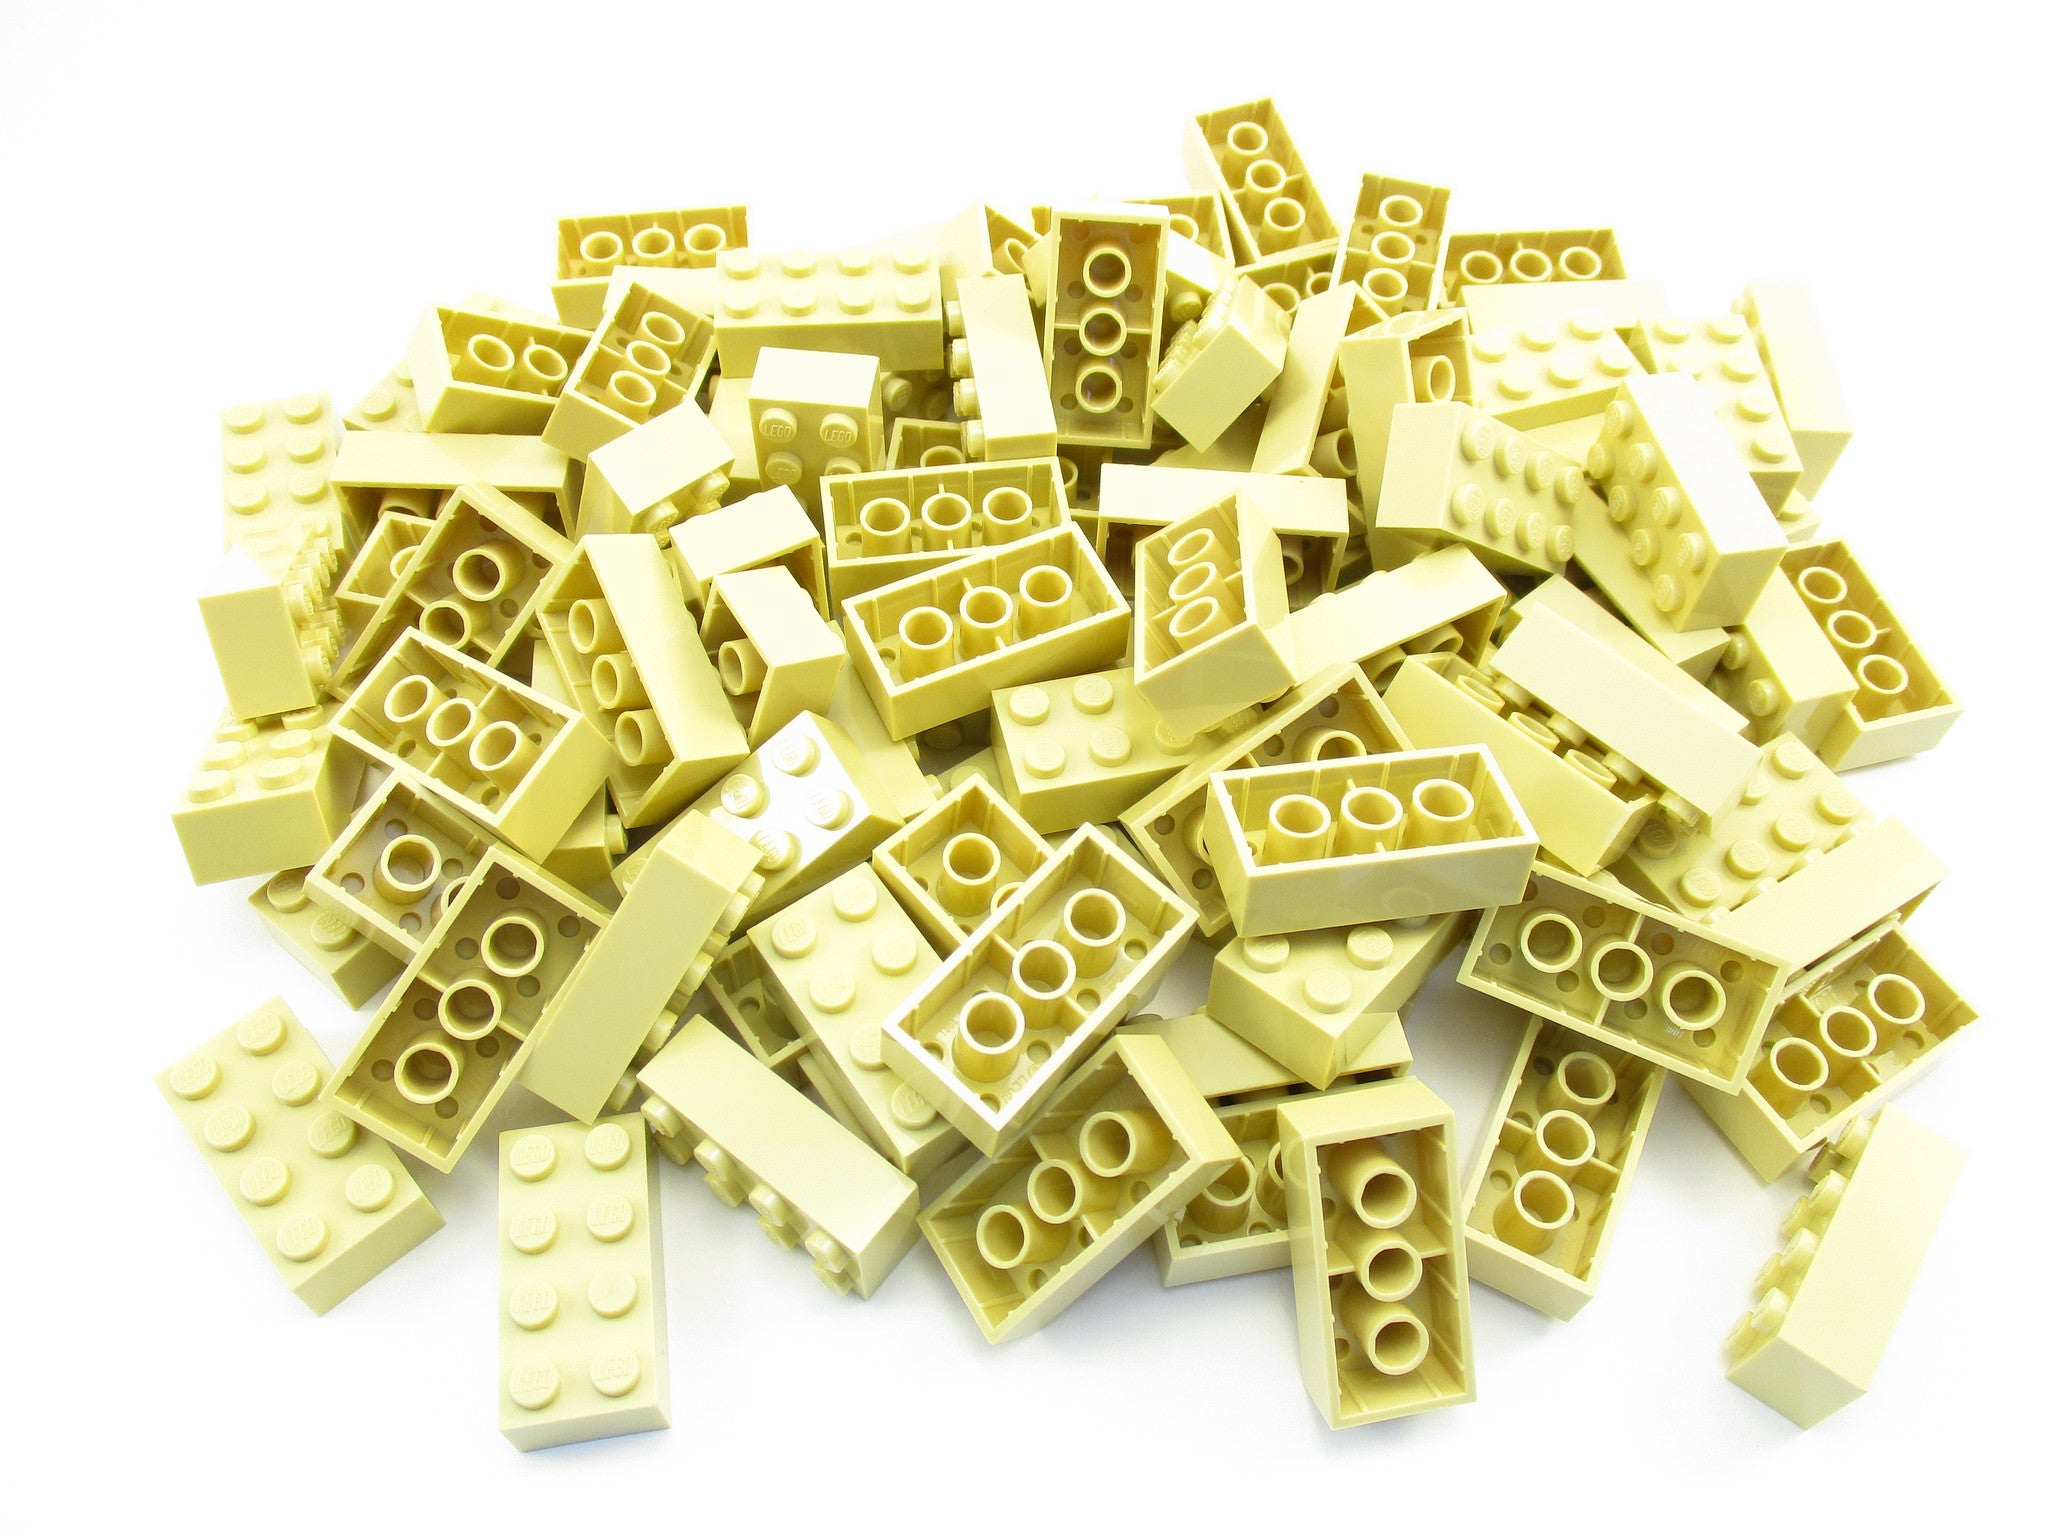 LEGO Tan Brick 2x4 Lot of 100 Parts Pieces 3001